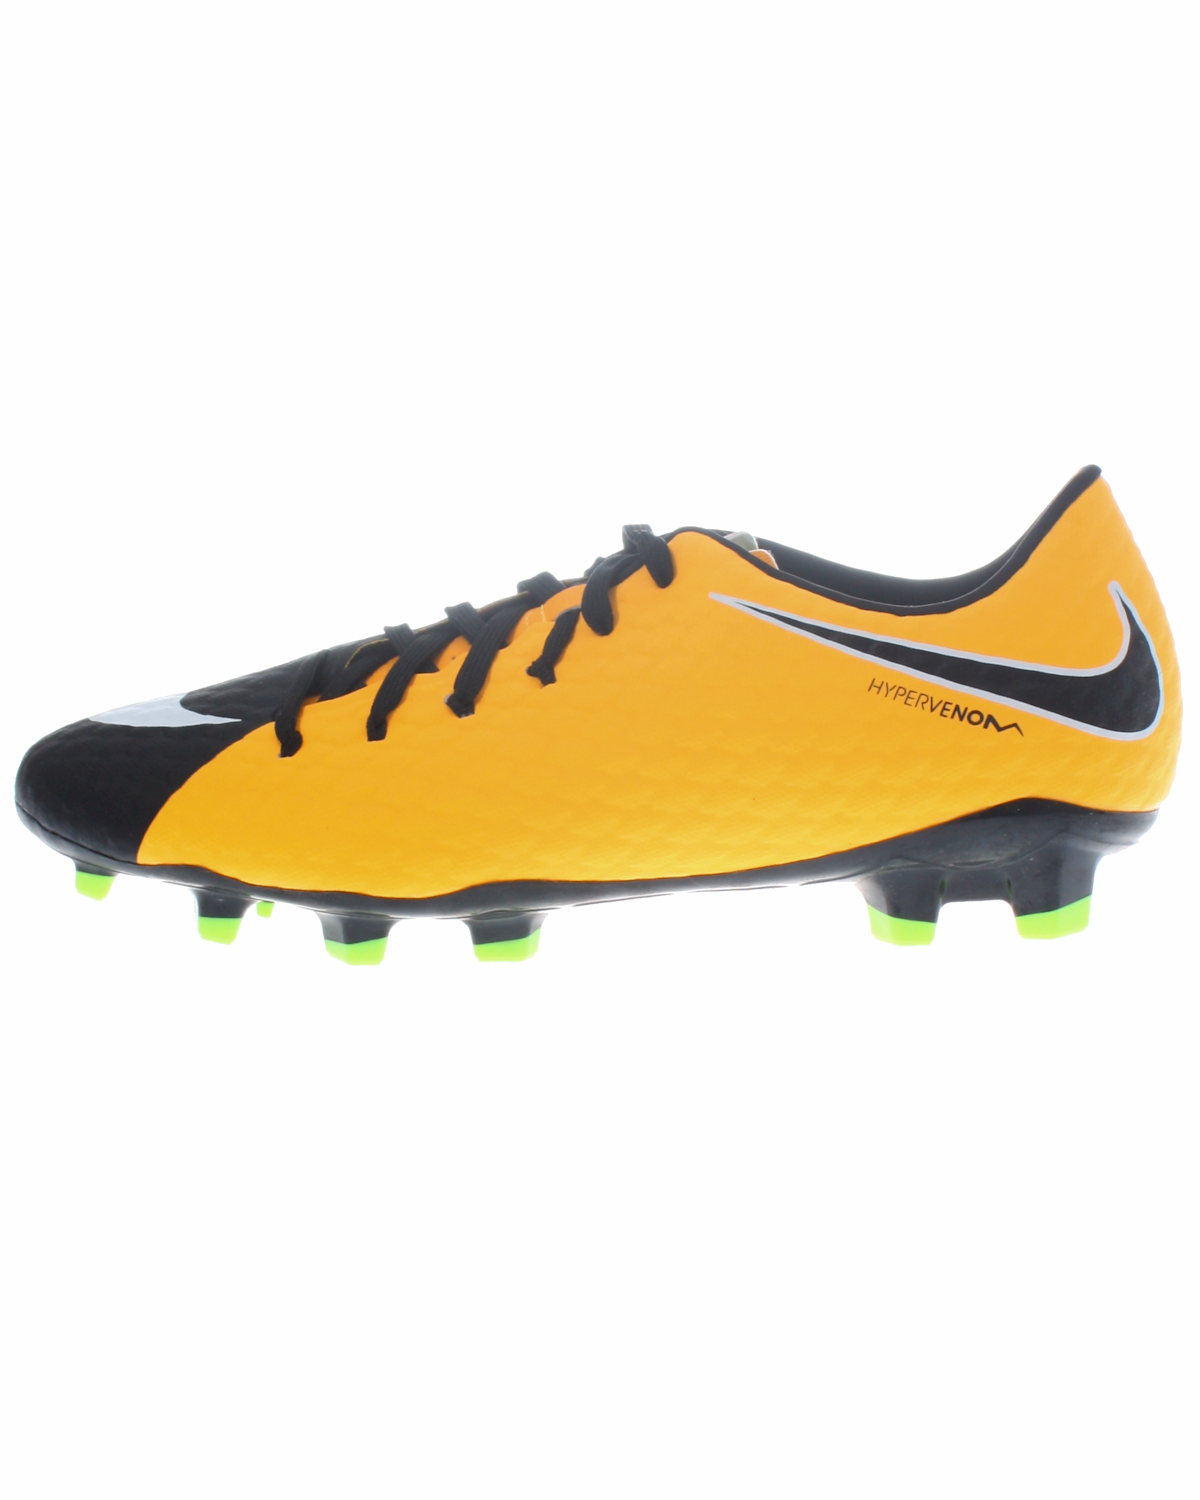 nike herren fu ball schuhe hypervenom phelon iii fg 852556. Black Bedroom Furniture Sets. Home Design Ideas